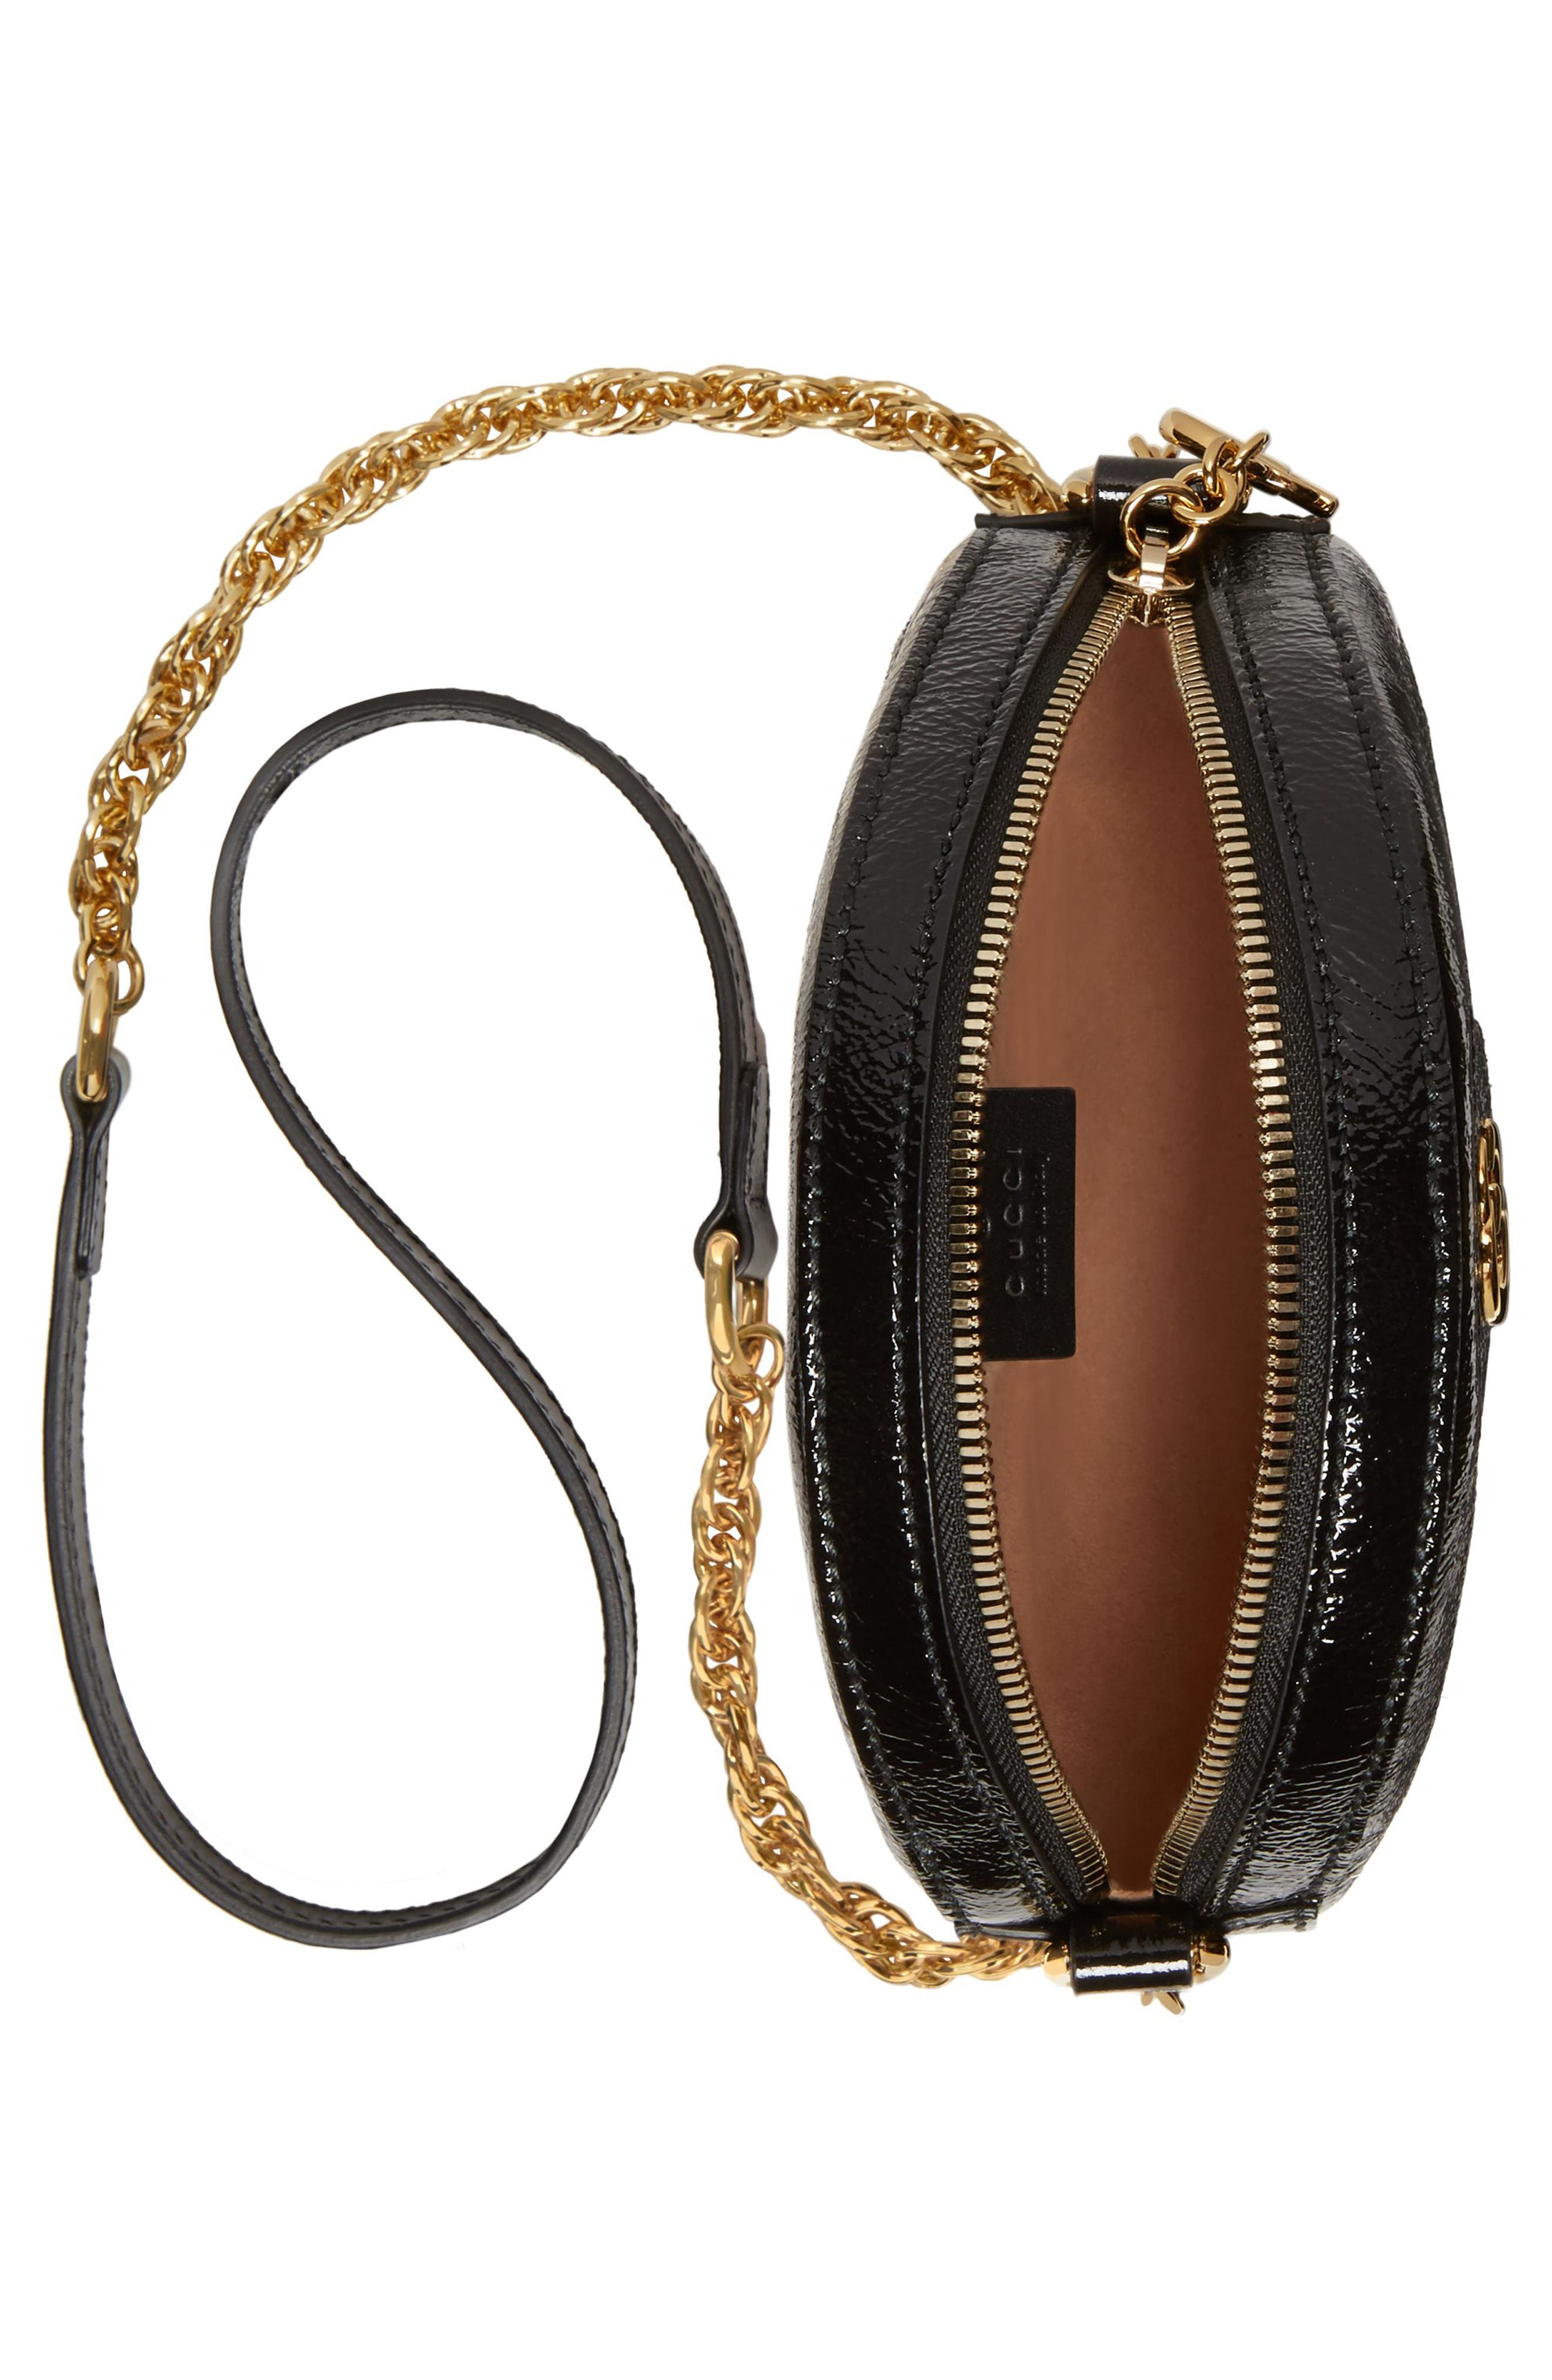 GUCCI,                             Mini Ophidia Round Shoulder Bag,                             Alternate thumbnail 3, color,                             HIBISCUS RED/ NERO/ BLUE